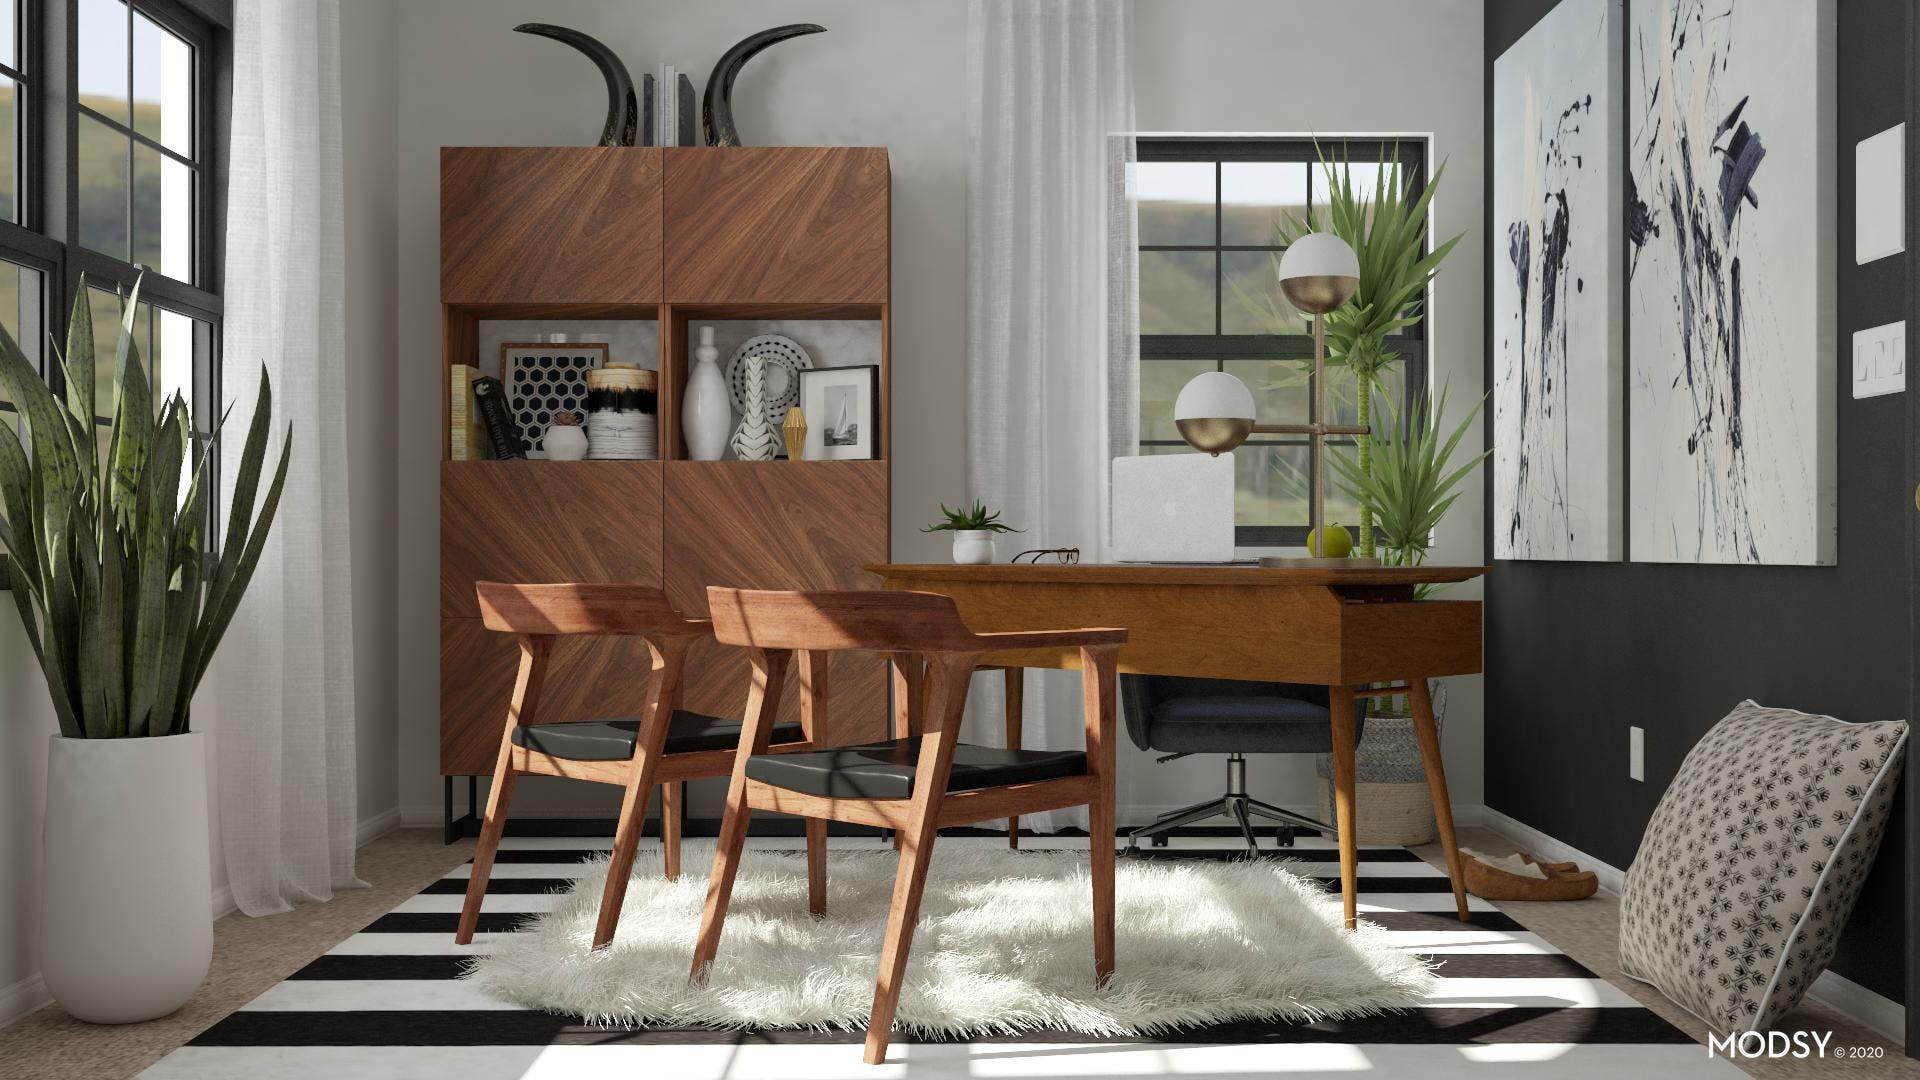 Getting Down To Business: Mid-Century Modern Office